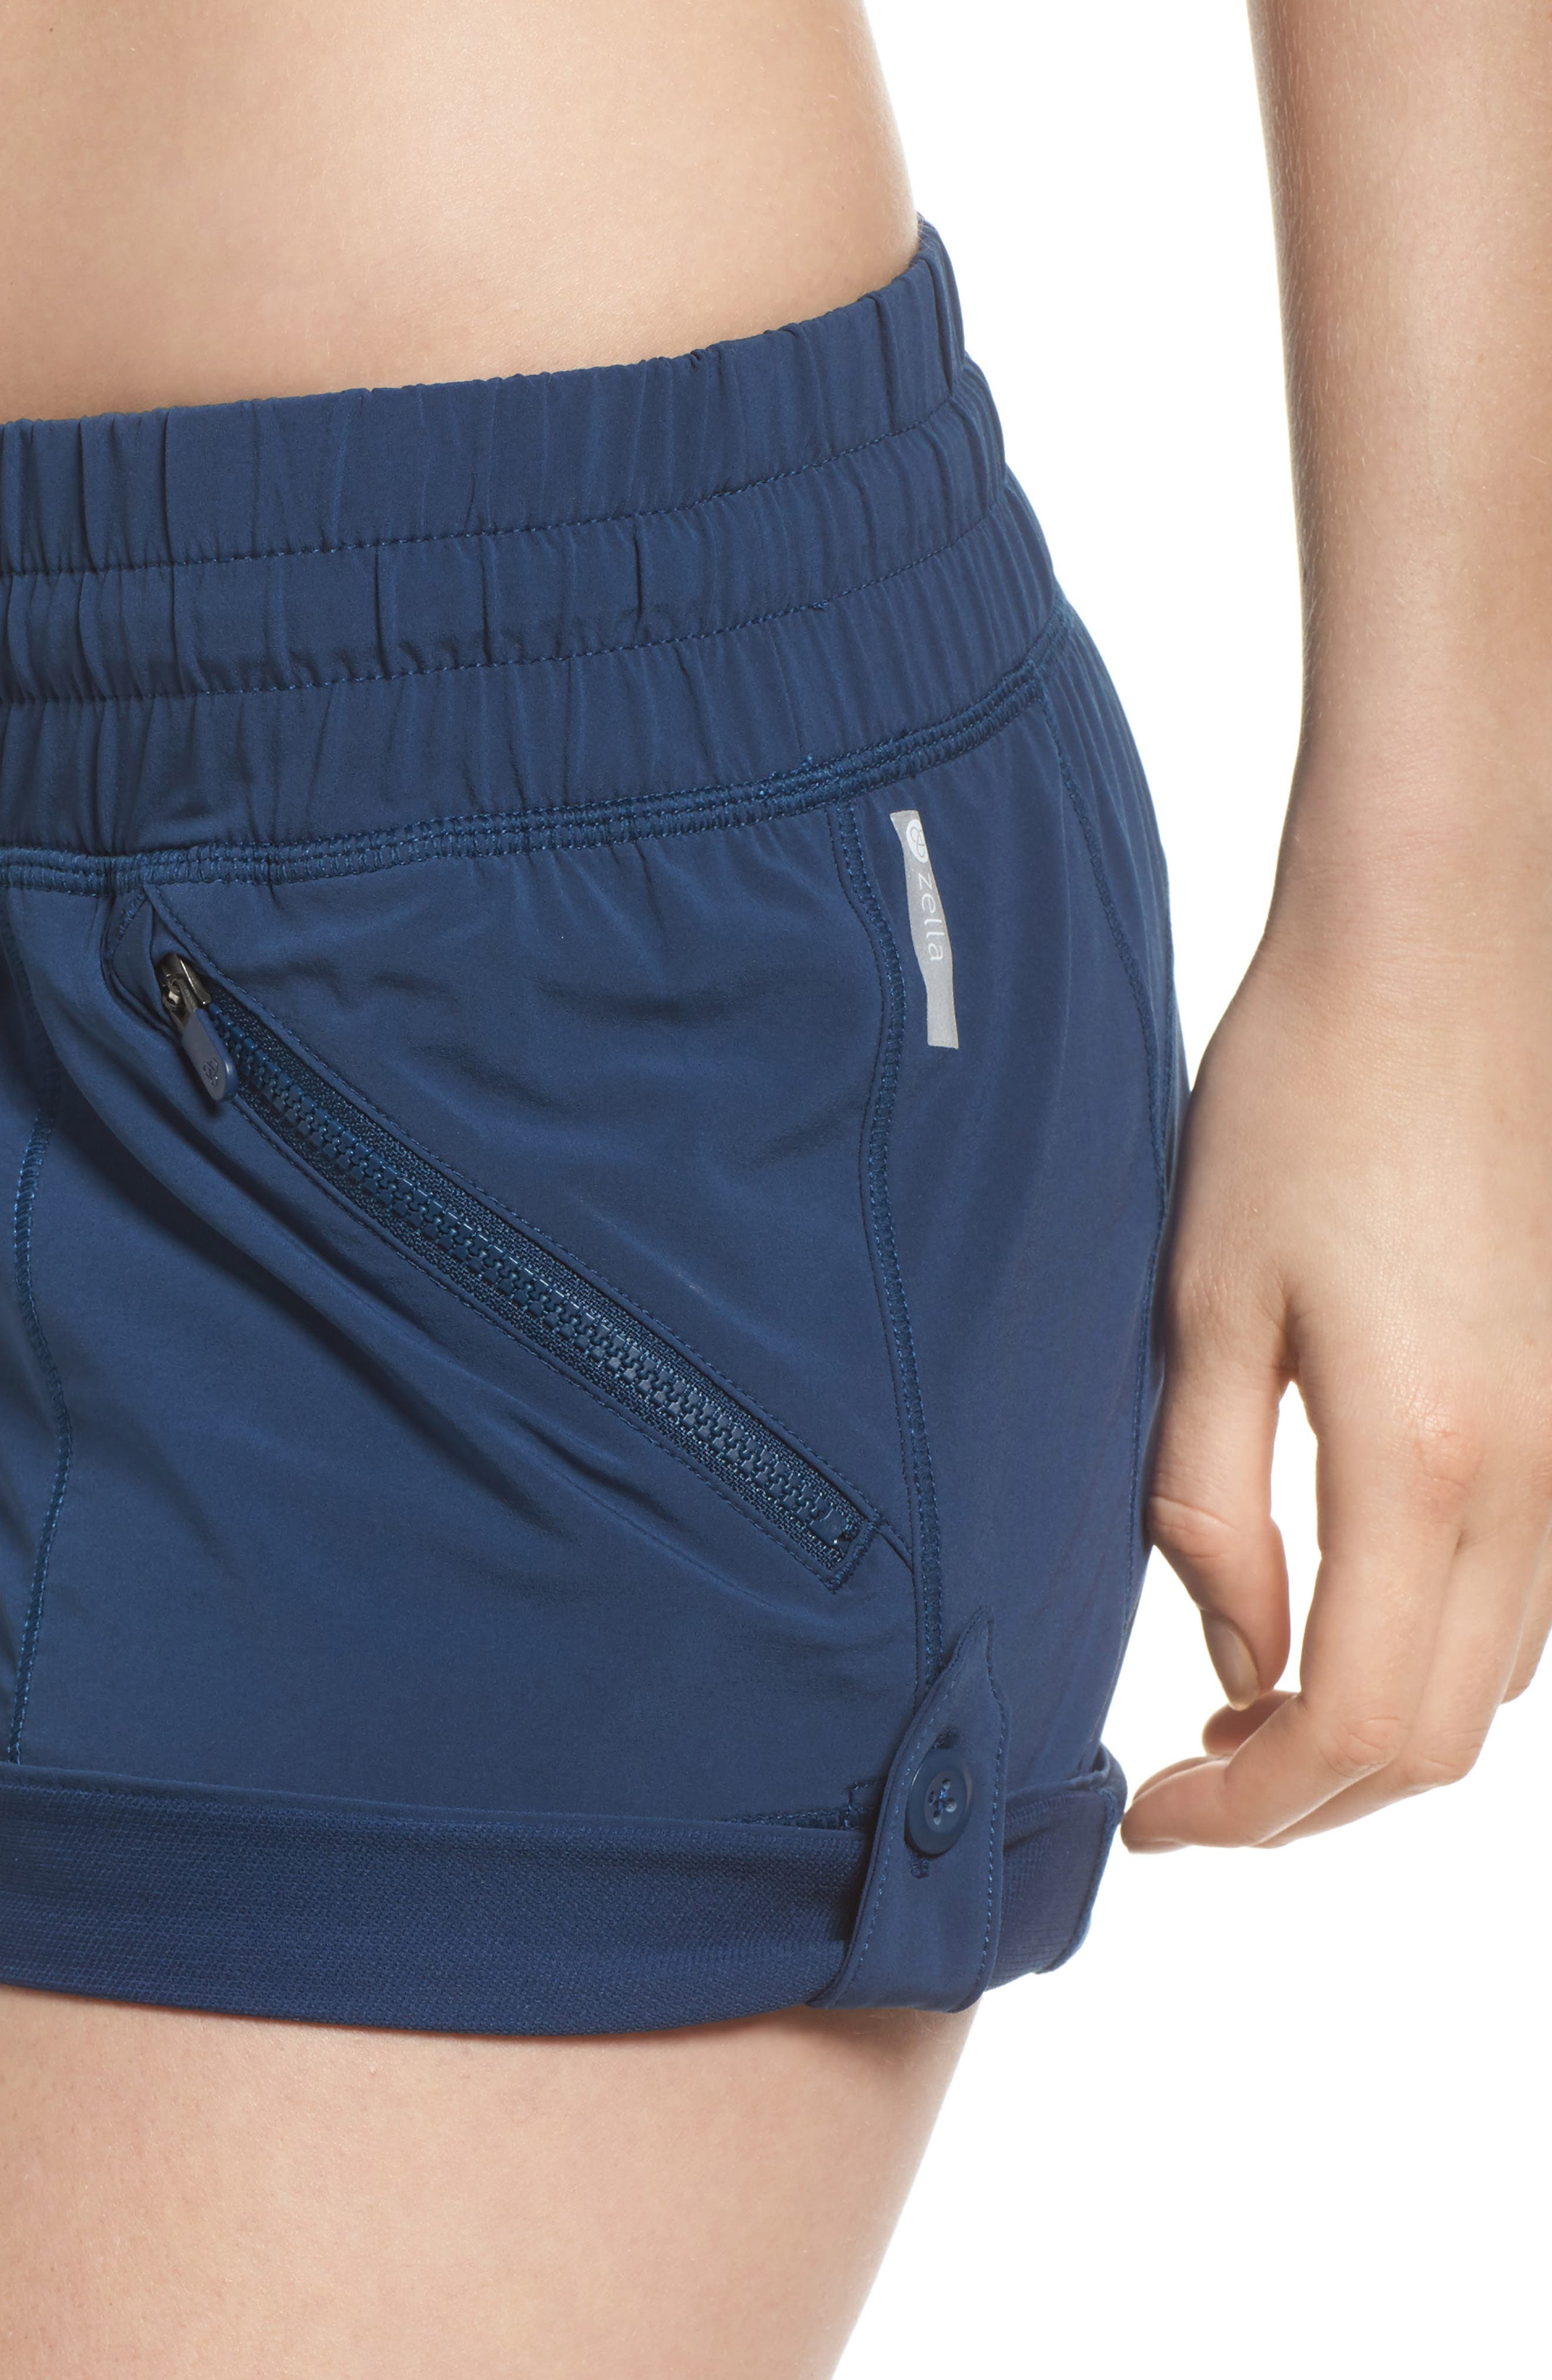 Switchback Shorts,                             Alternate thumbnail 4, color,                             Blue Insignia